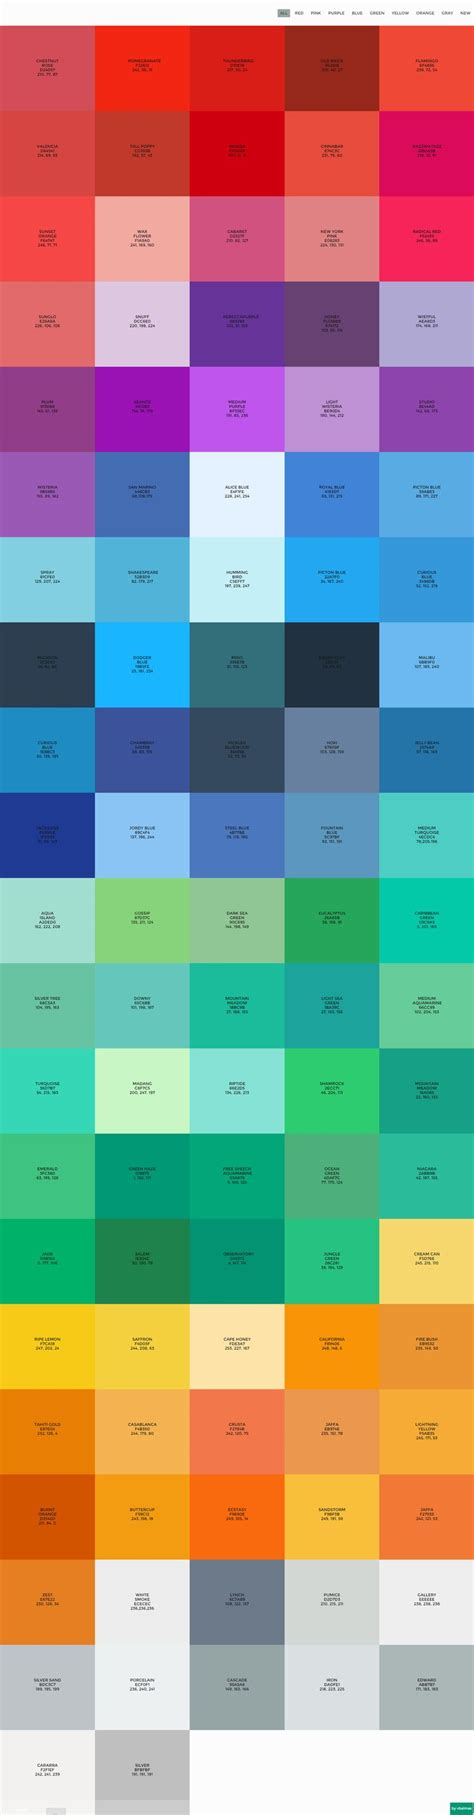 flat ui color best 25 flat ui ideas on flat color ui flat